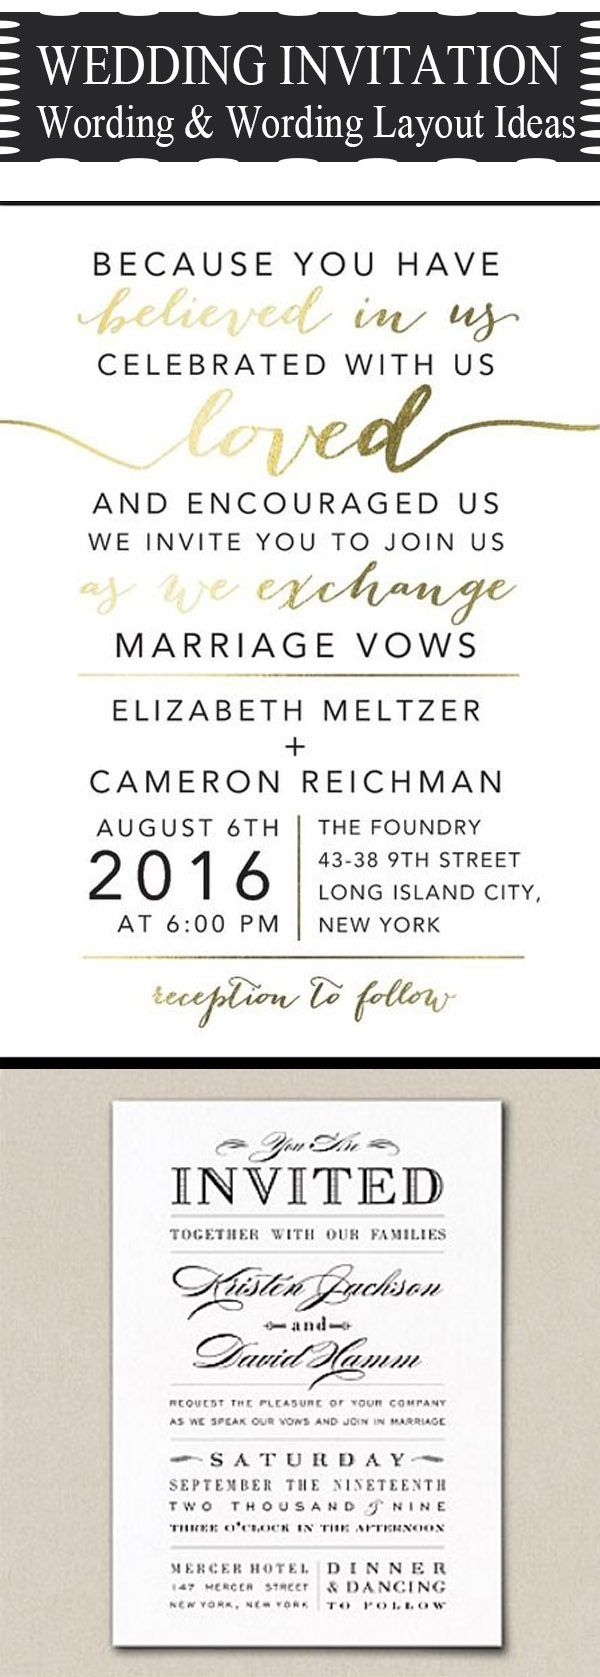 20 popular wedding invitation wording diy templates ideas - Wedding Invite Examples